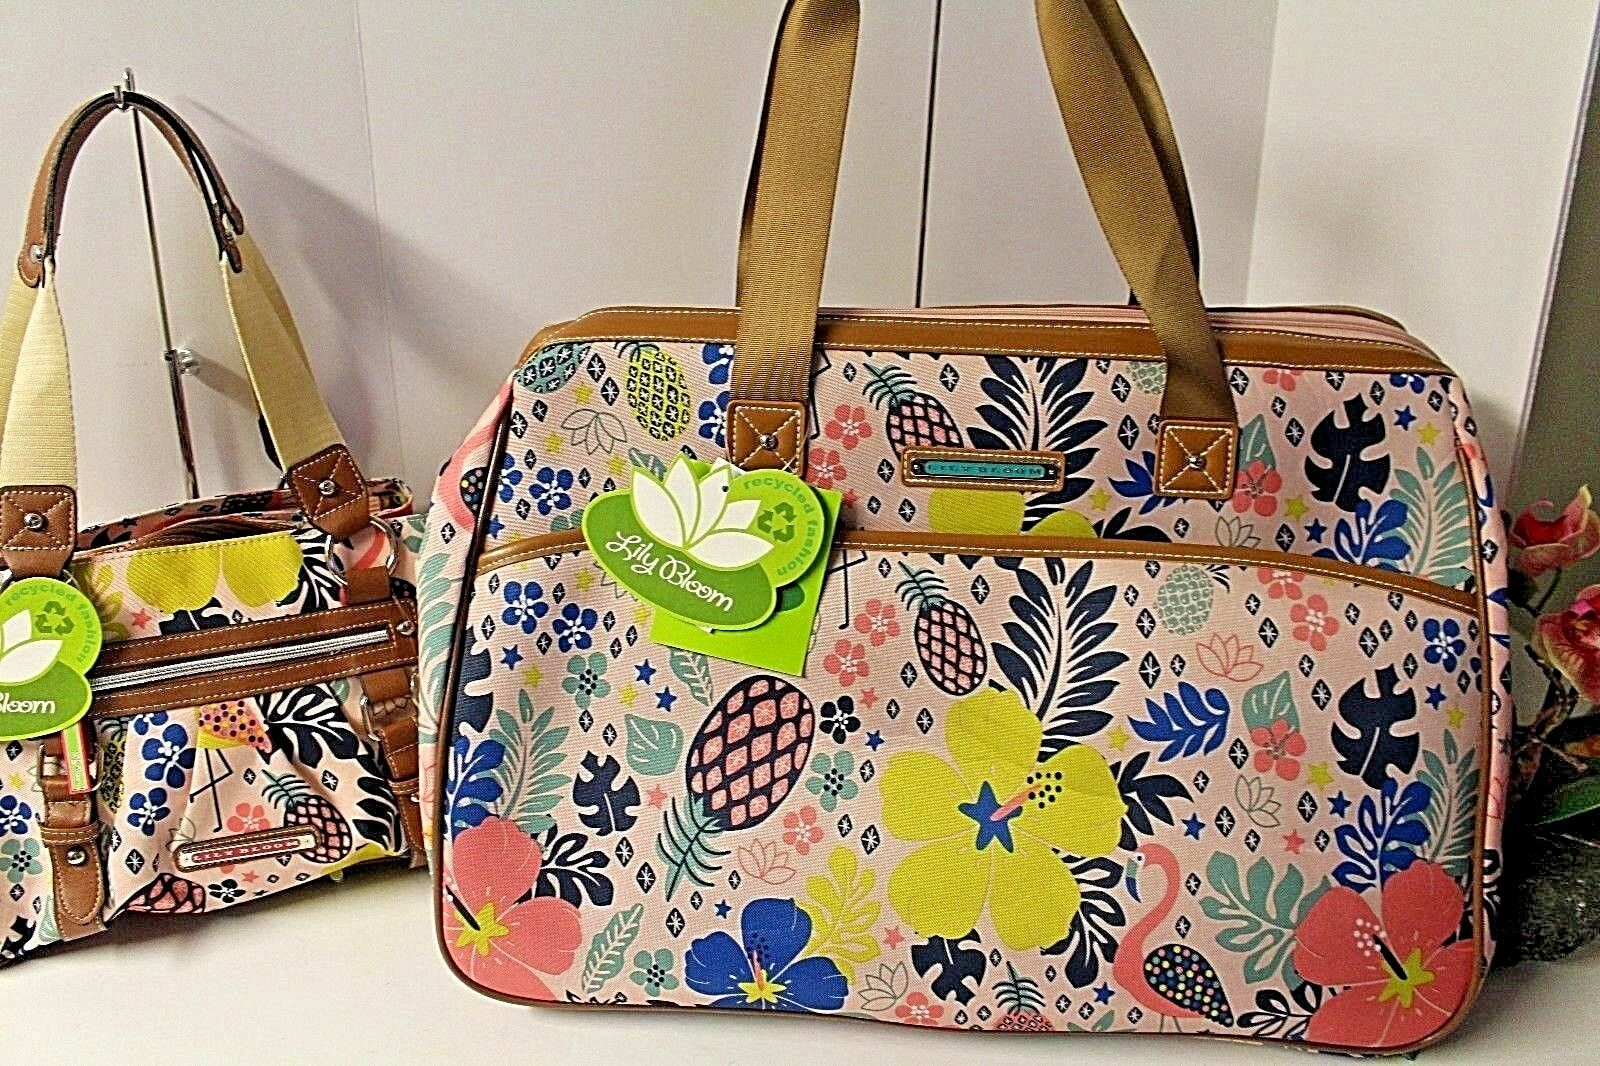 909ef8030 Lily Bloom Luggage DESIGNER Pattern Suitcase Wheeled Duffel Carry on ...